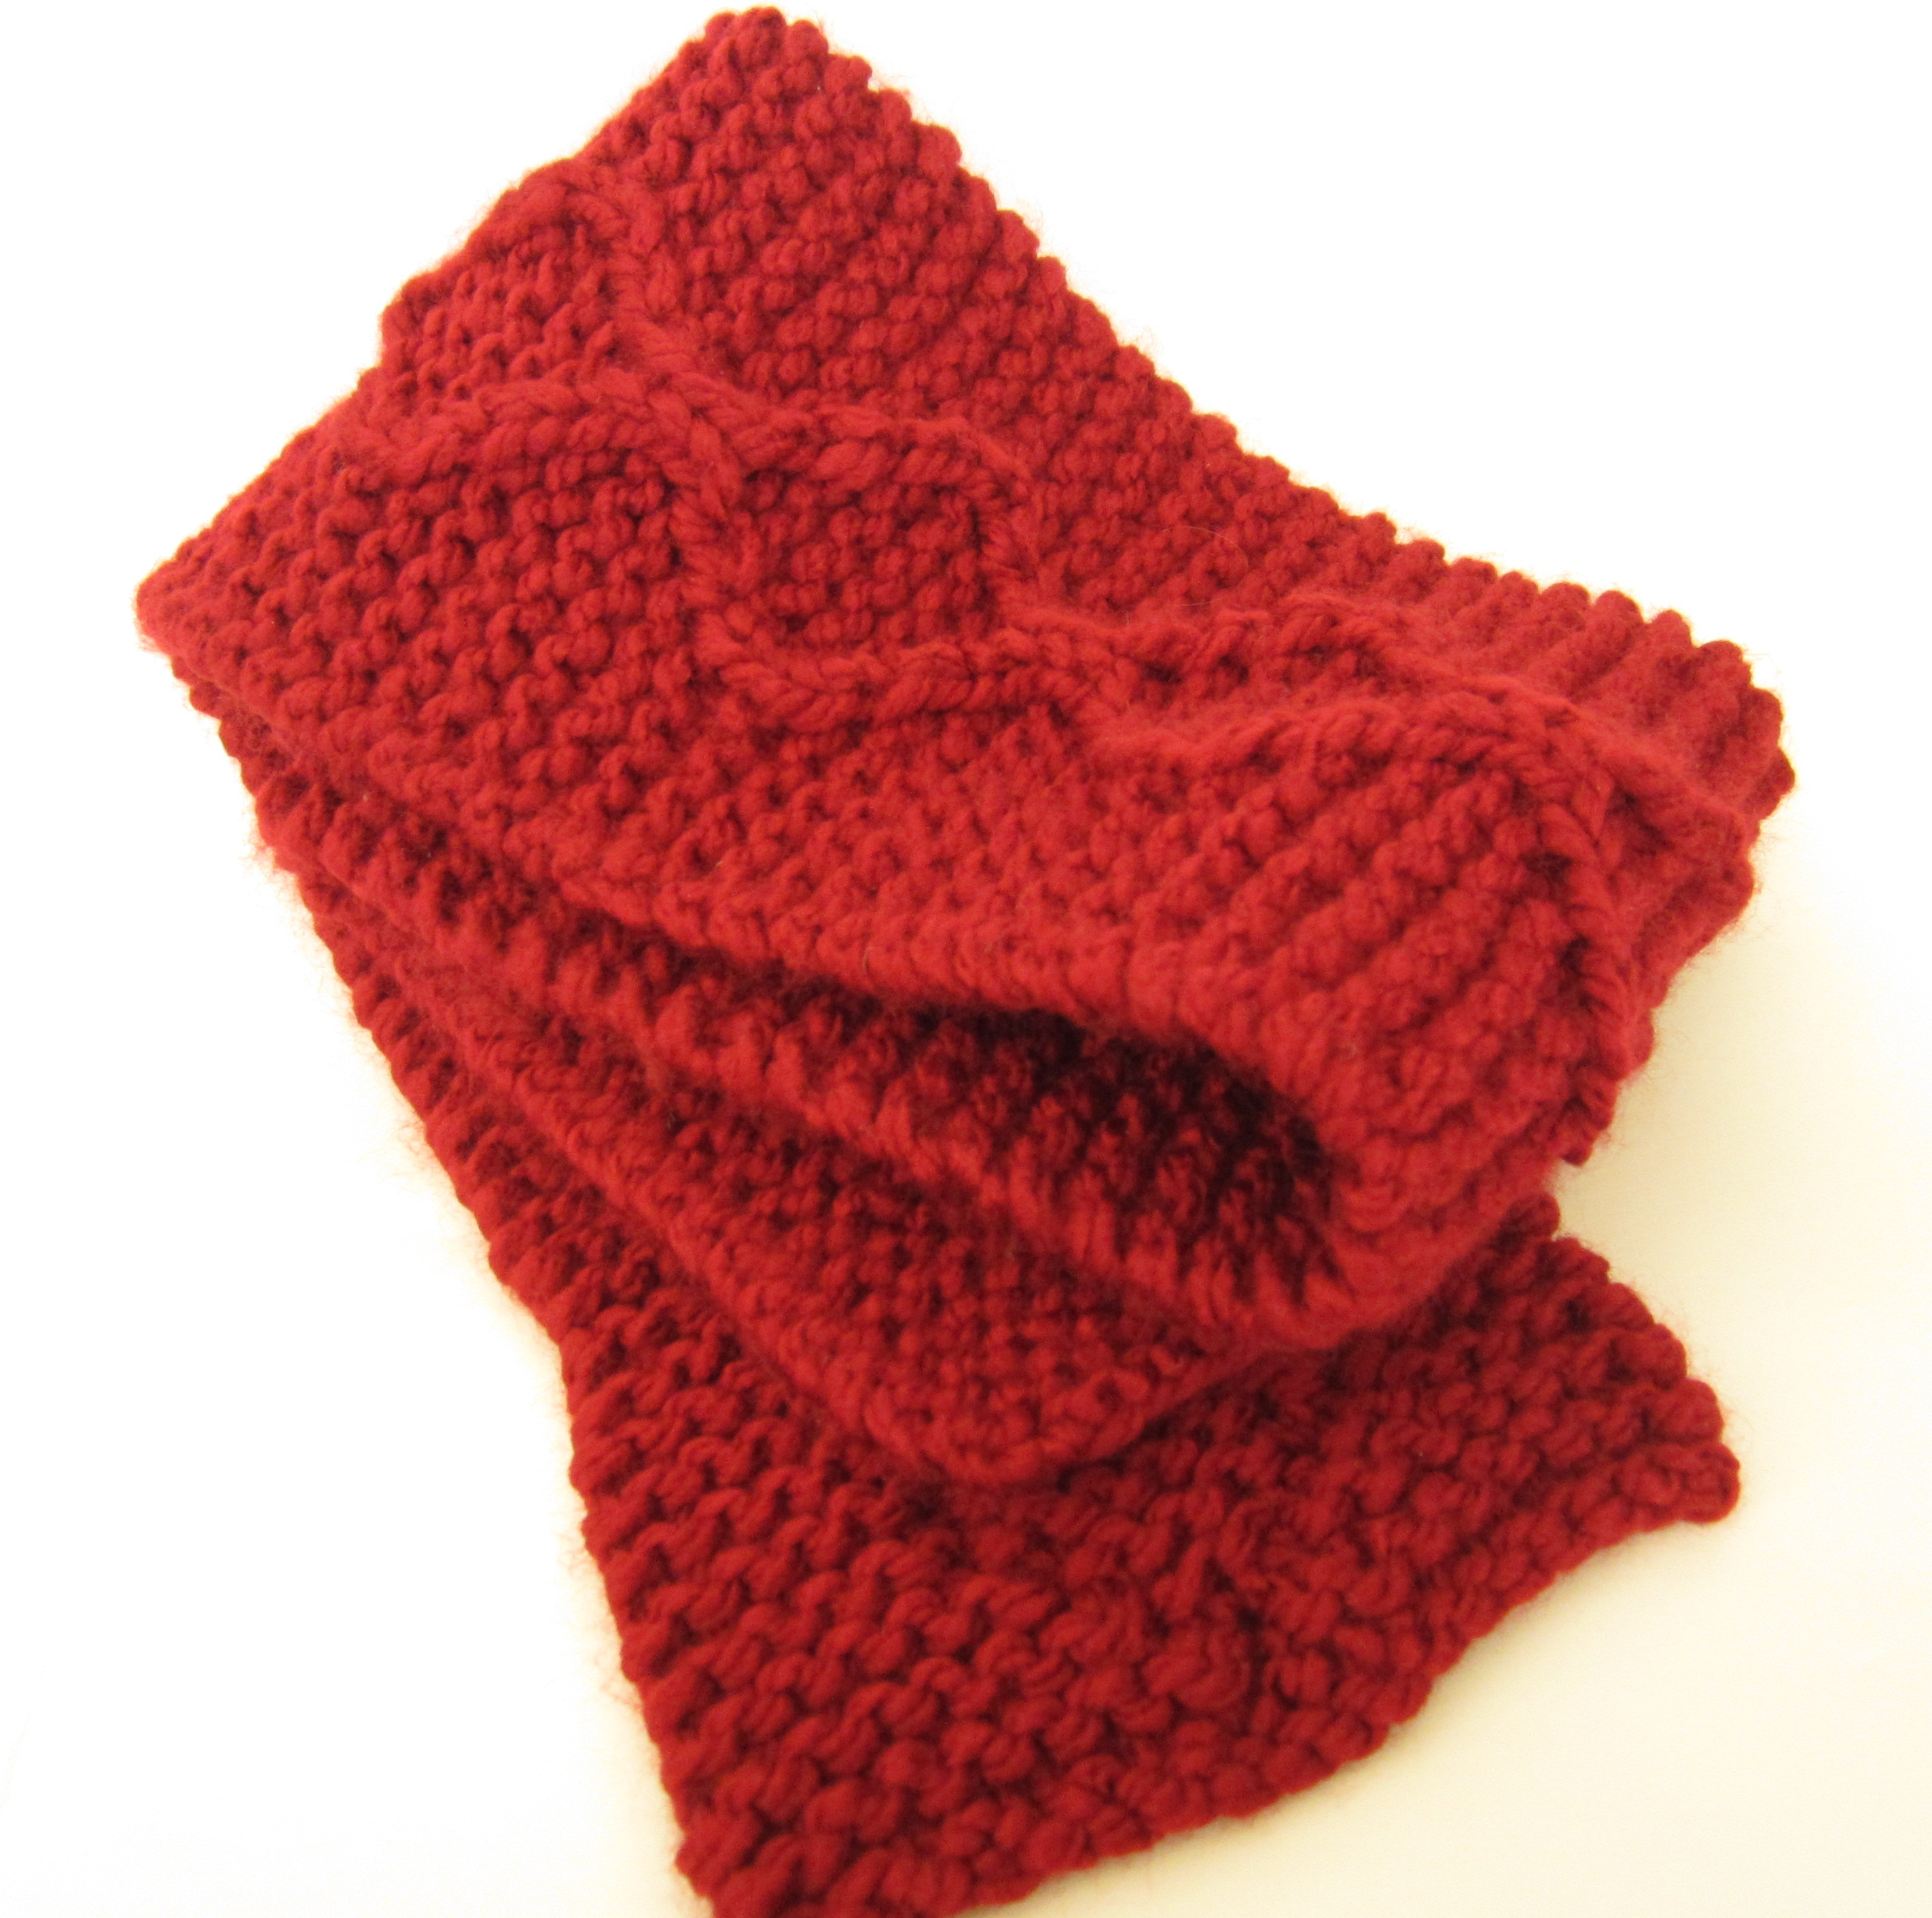 Knitting Scarves Free Patterns : Quick Free Knitting Pattern   Chunky Cable Scarf